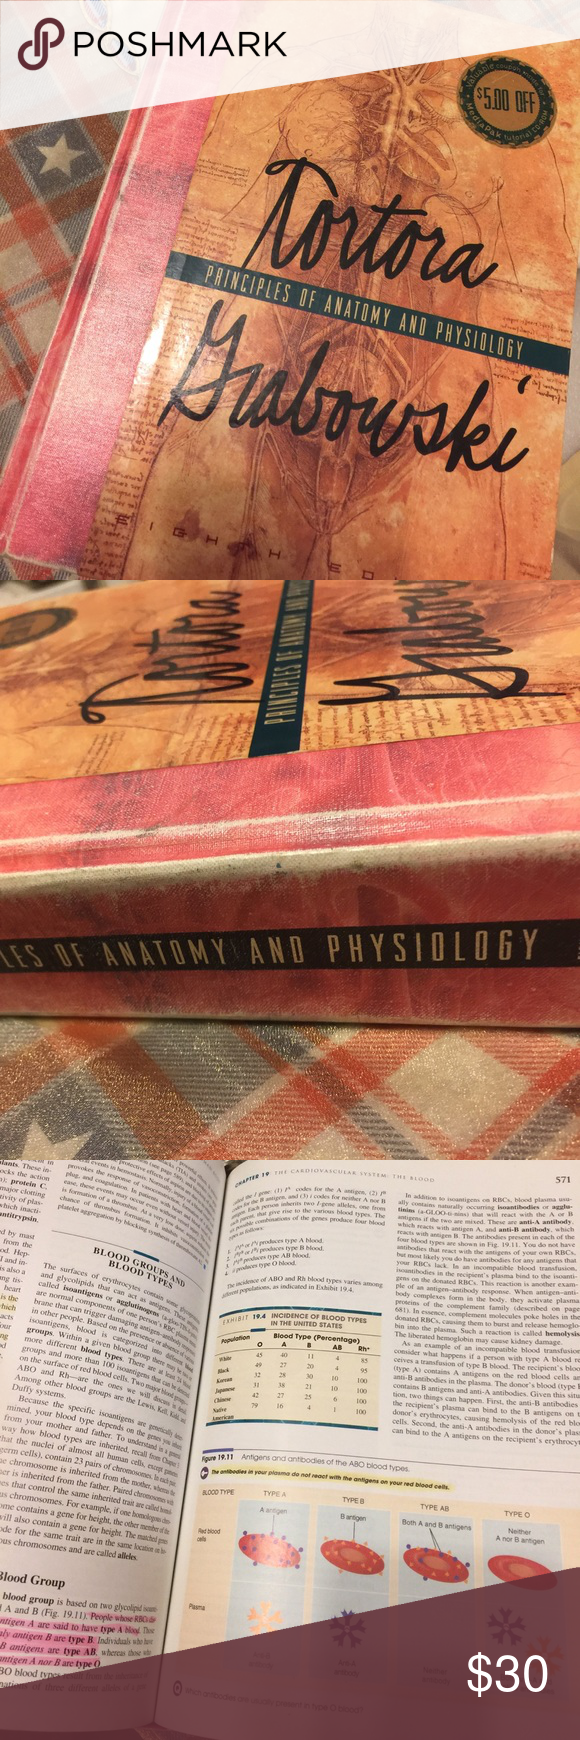 Principles of anatomy and physiology 8th edition | Anatomy